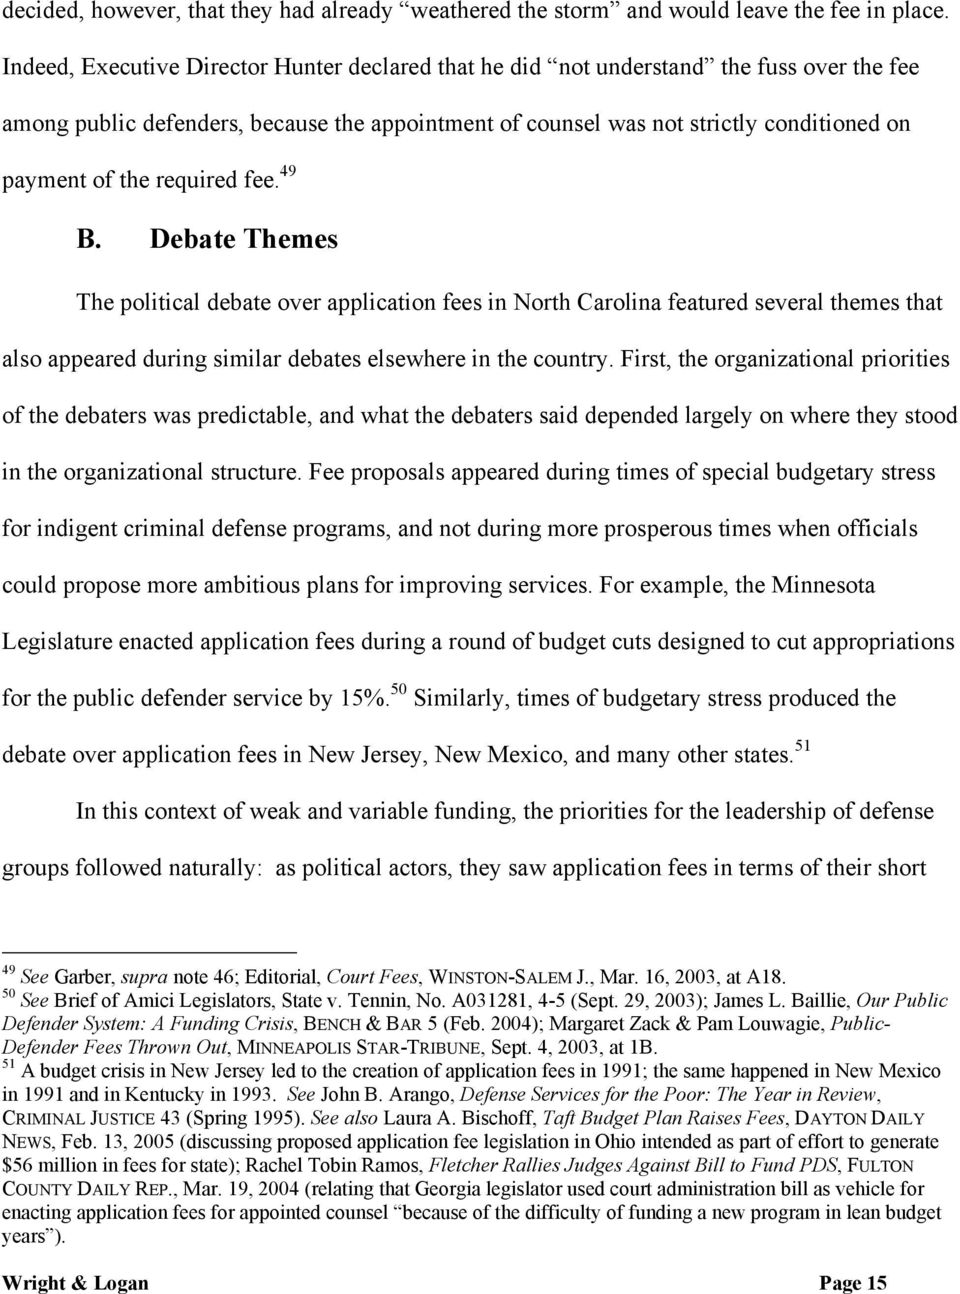 required fee. 49 B. Debate Themes The political debate over application fees in North Carolina featured several themes that also appeared during similar debates elsewhere in the country.